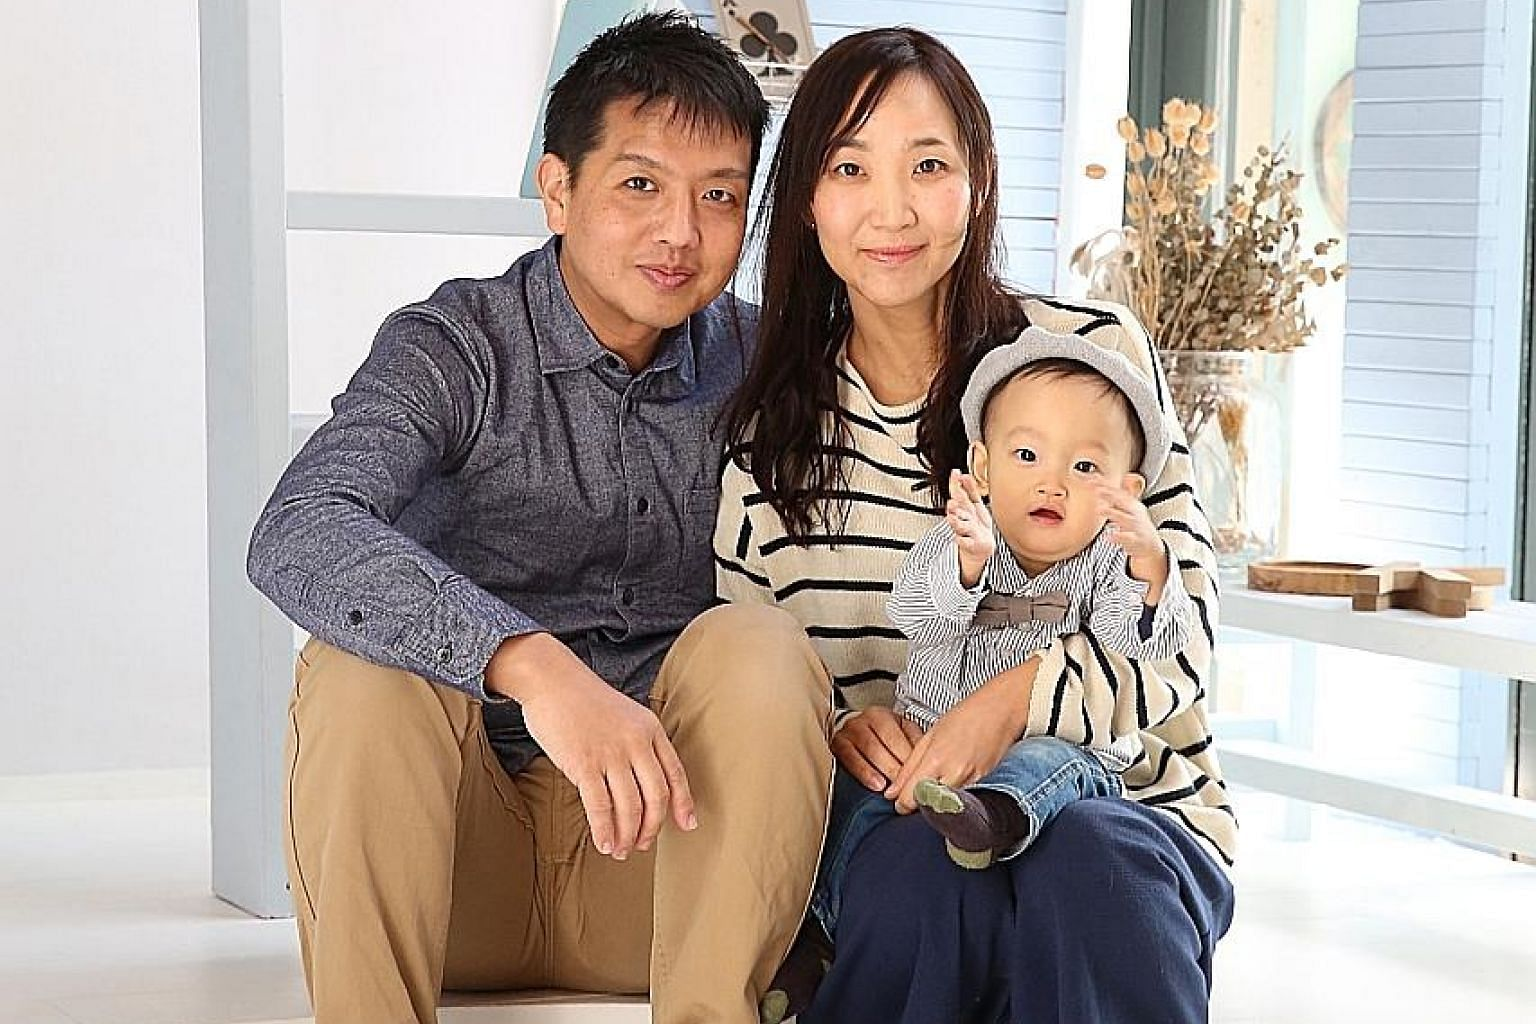 Mr Sachio Ooishi (with his wife and child) was a promising basketball player before becoming addicted to pachinko.